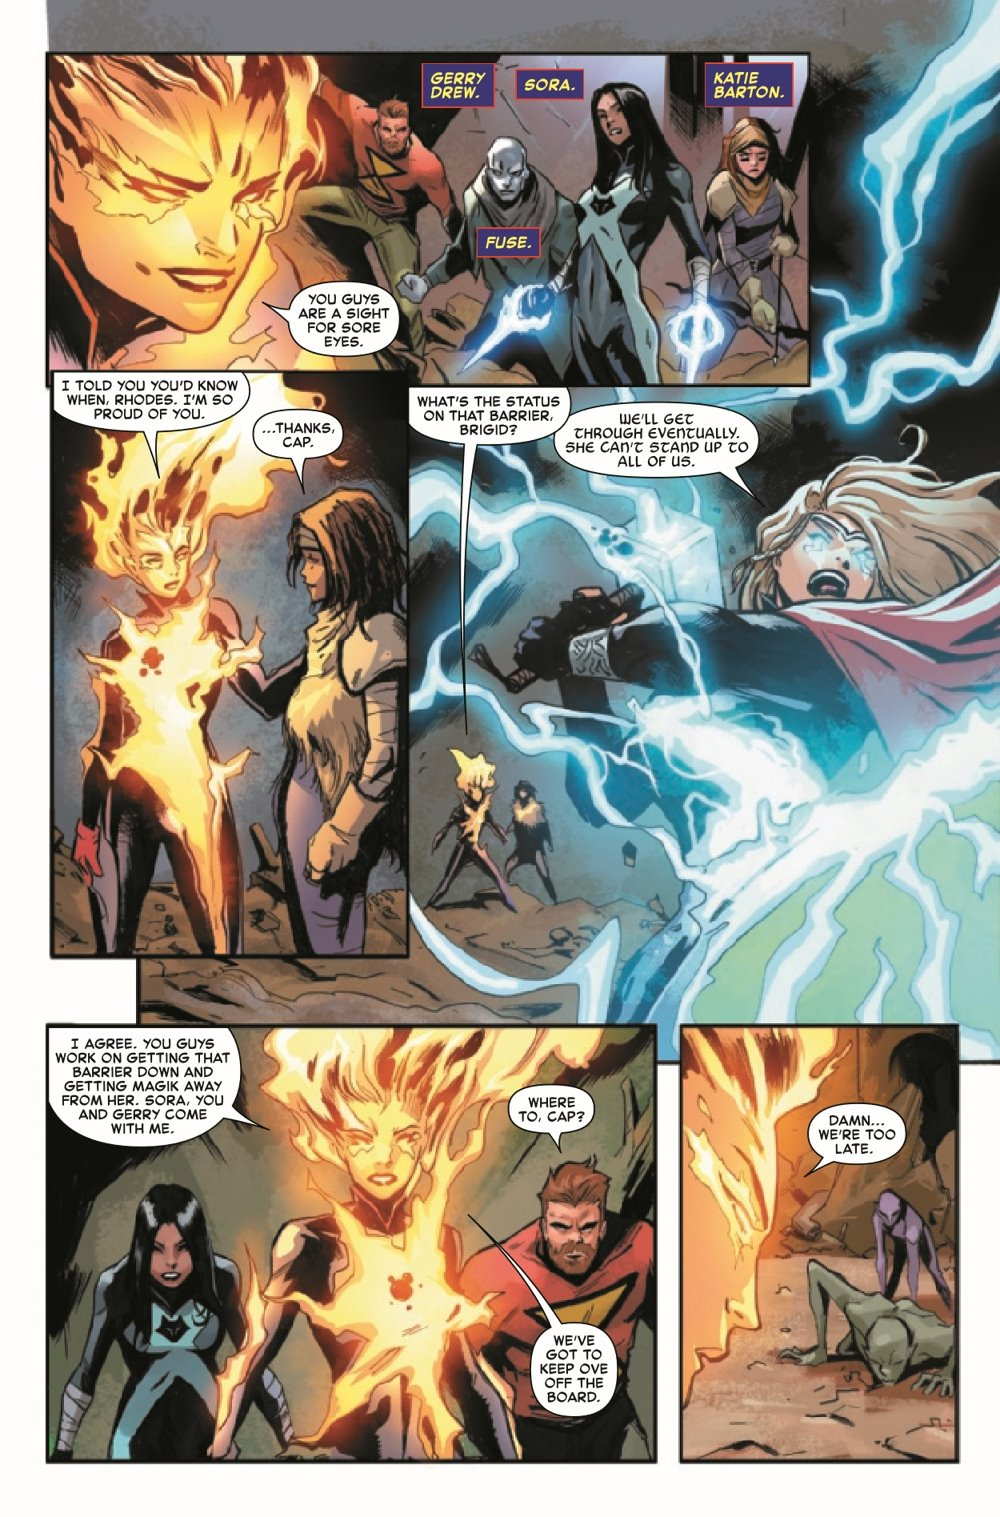 CAPMARV2019026_Preview-6 ComicList Previews: CAPTAIN MARVEL #26